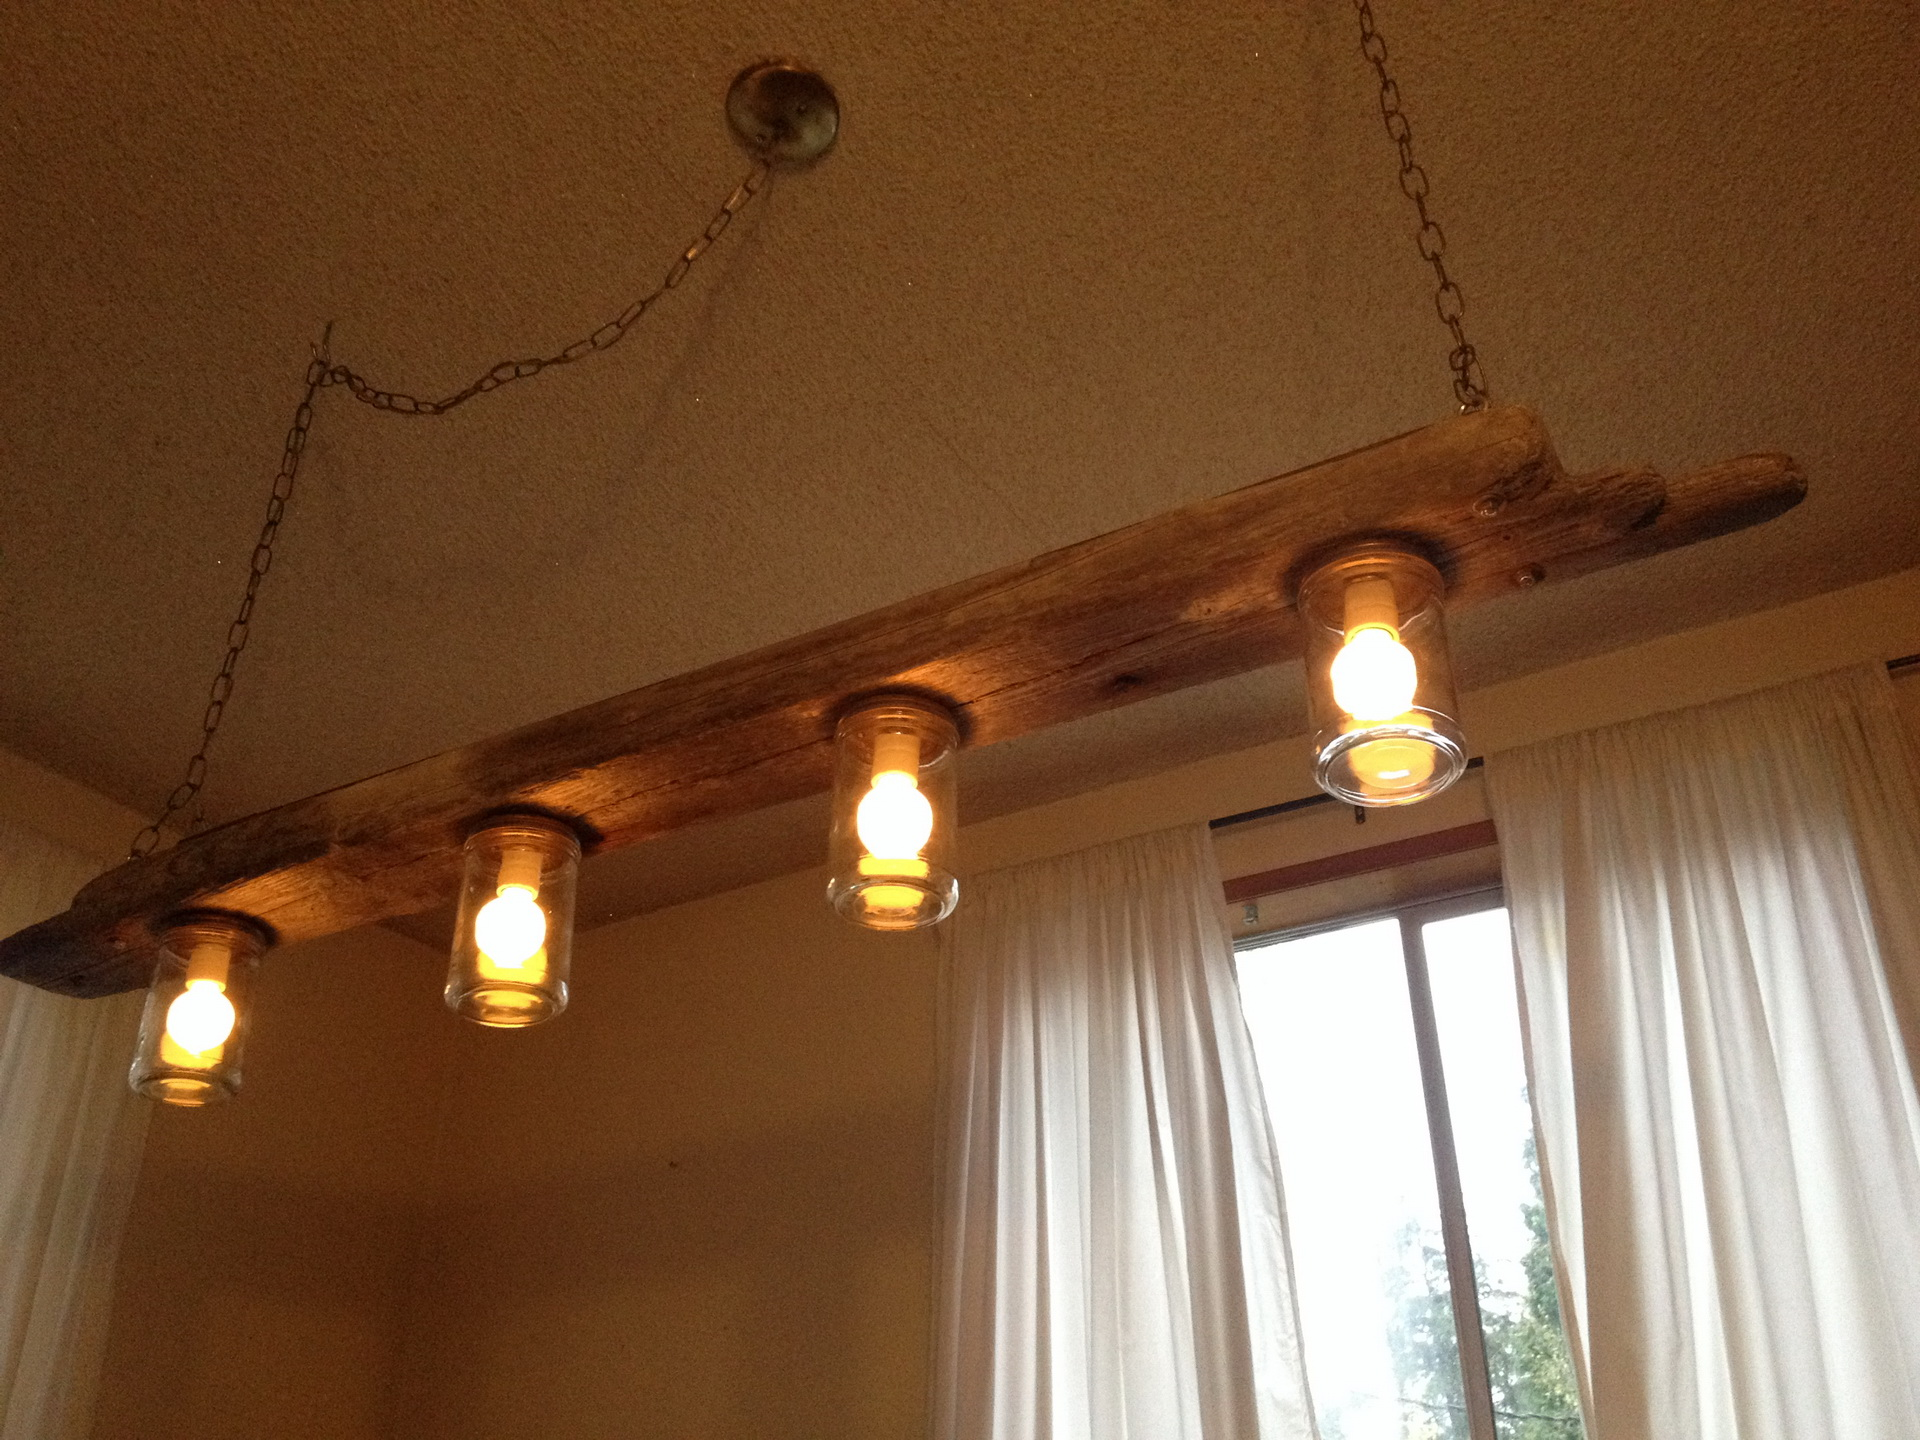 Beach Hanging Lights Wooden Ceiling Lights For Excellent Lighting And Interior